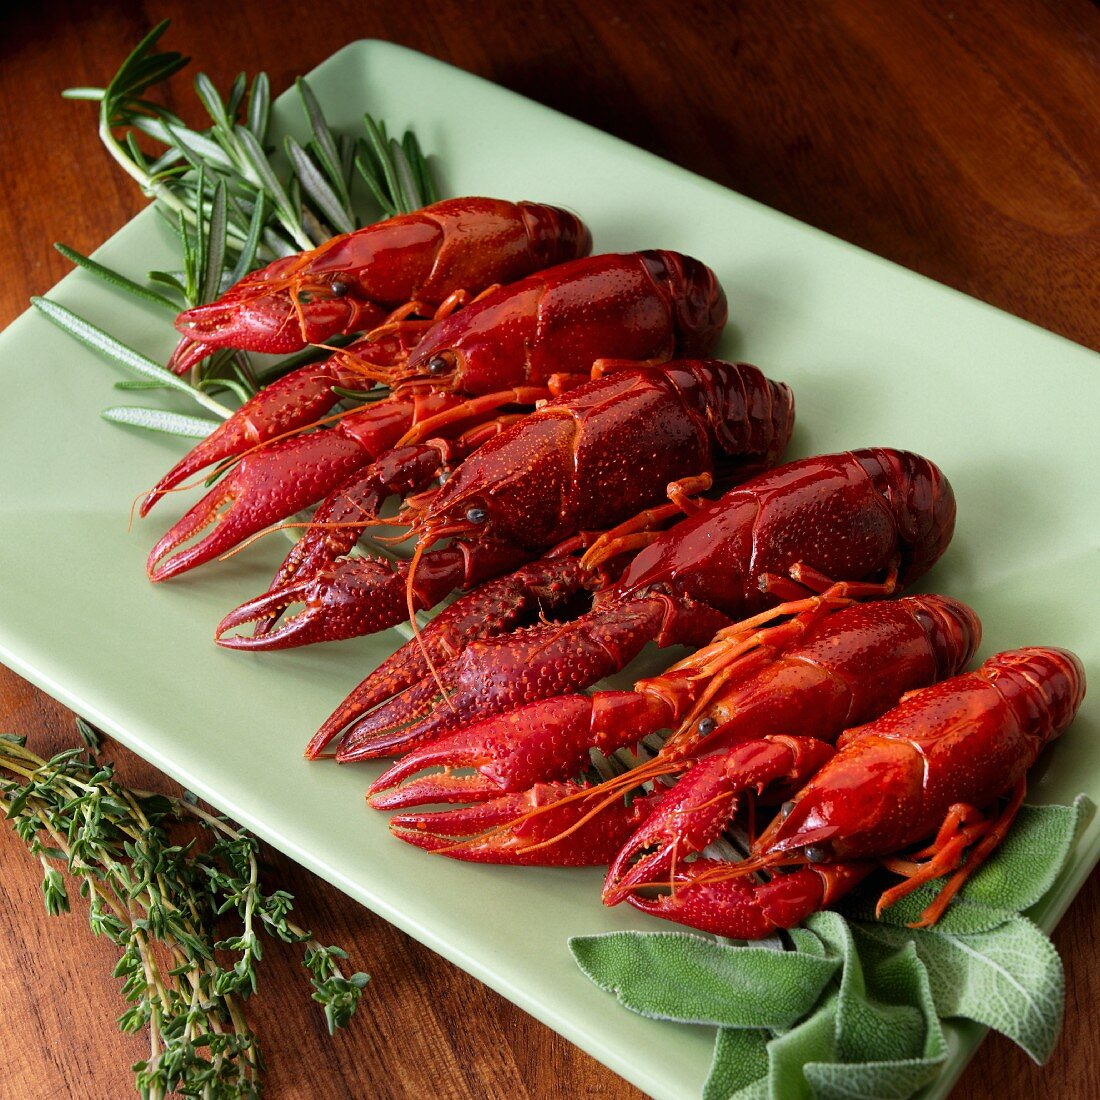 Boiled crayfish with herbs on a serving platter